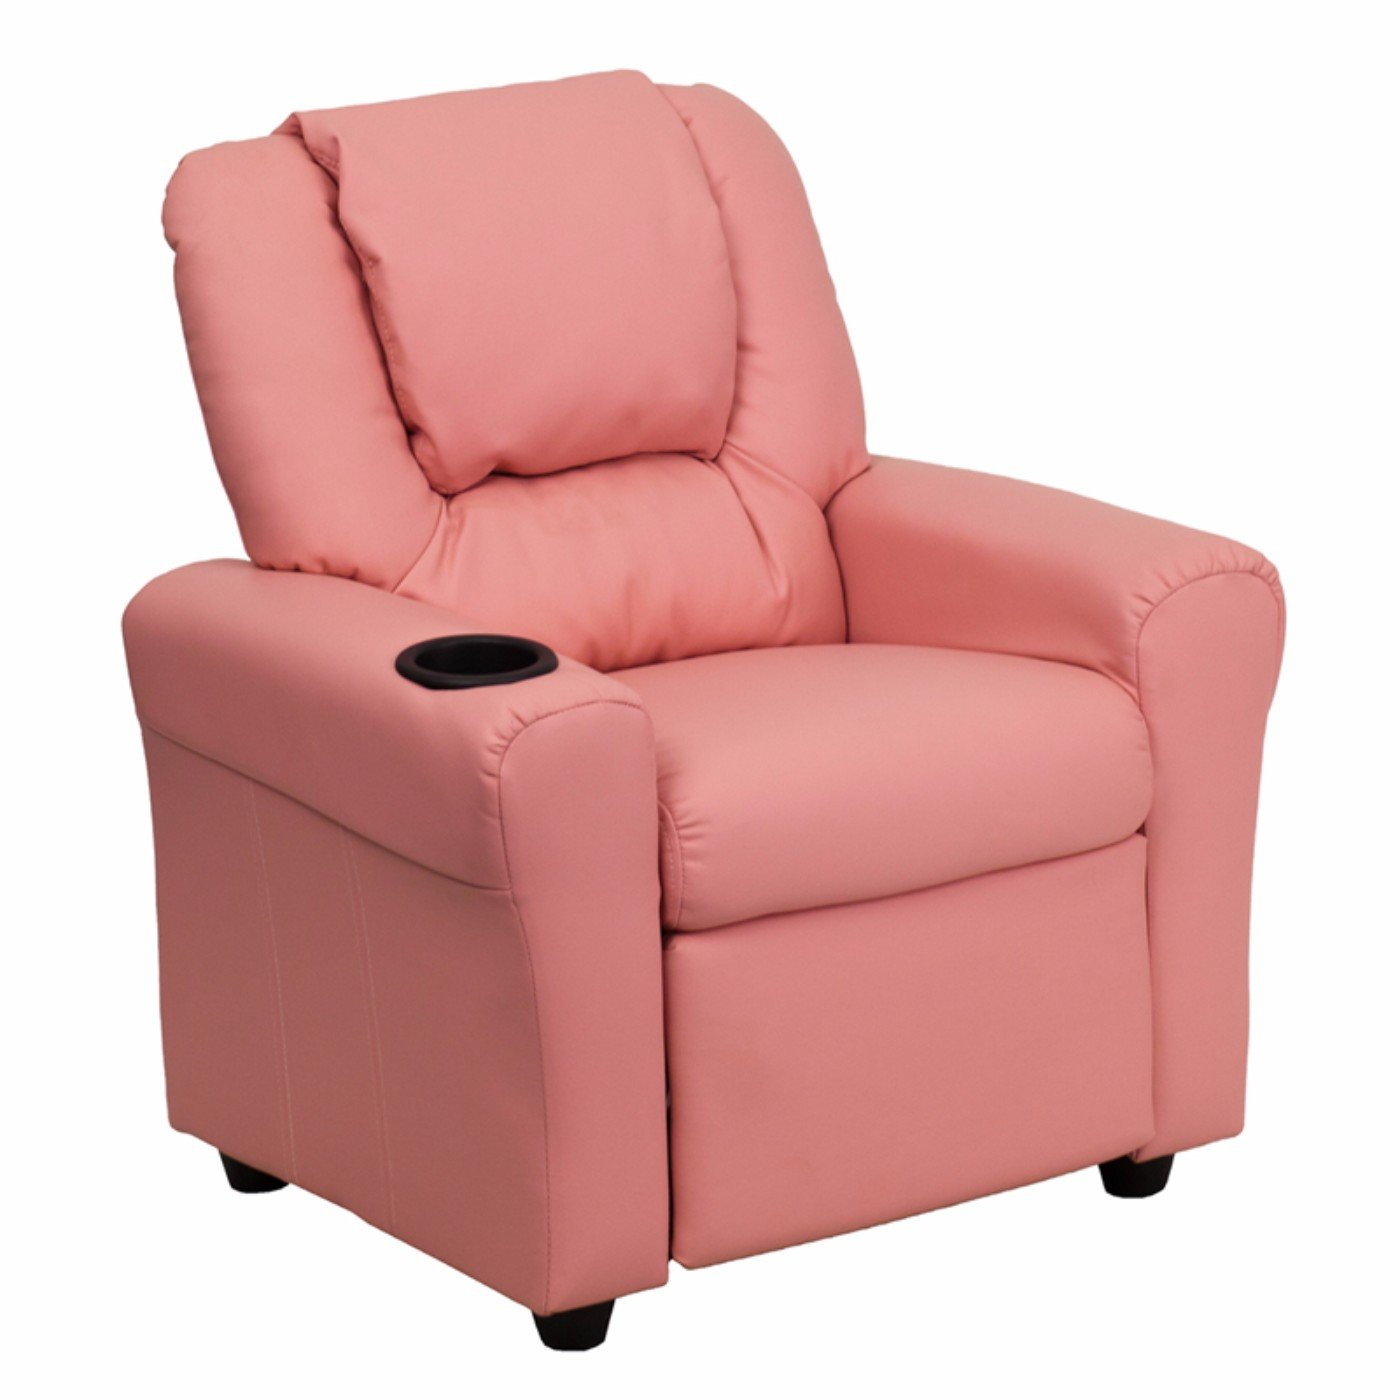 Winston Direct Kids Series Contemporary Vinyl Recliner with Cup Holder and Headrest - Pastel Pink